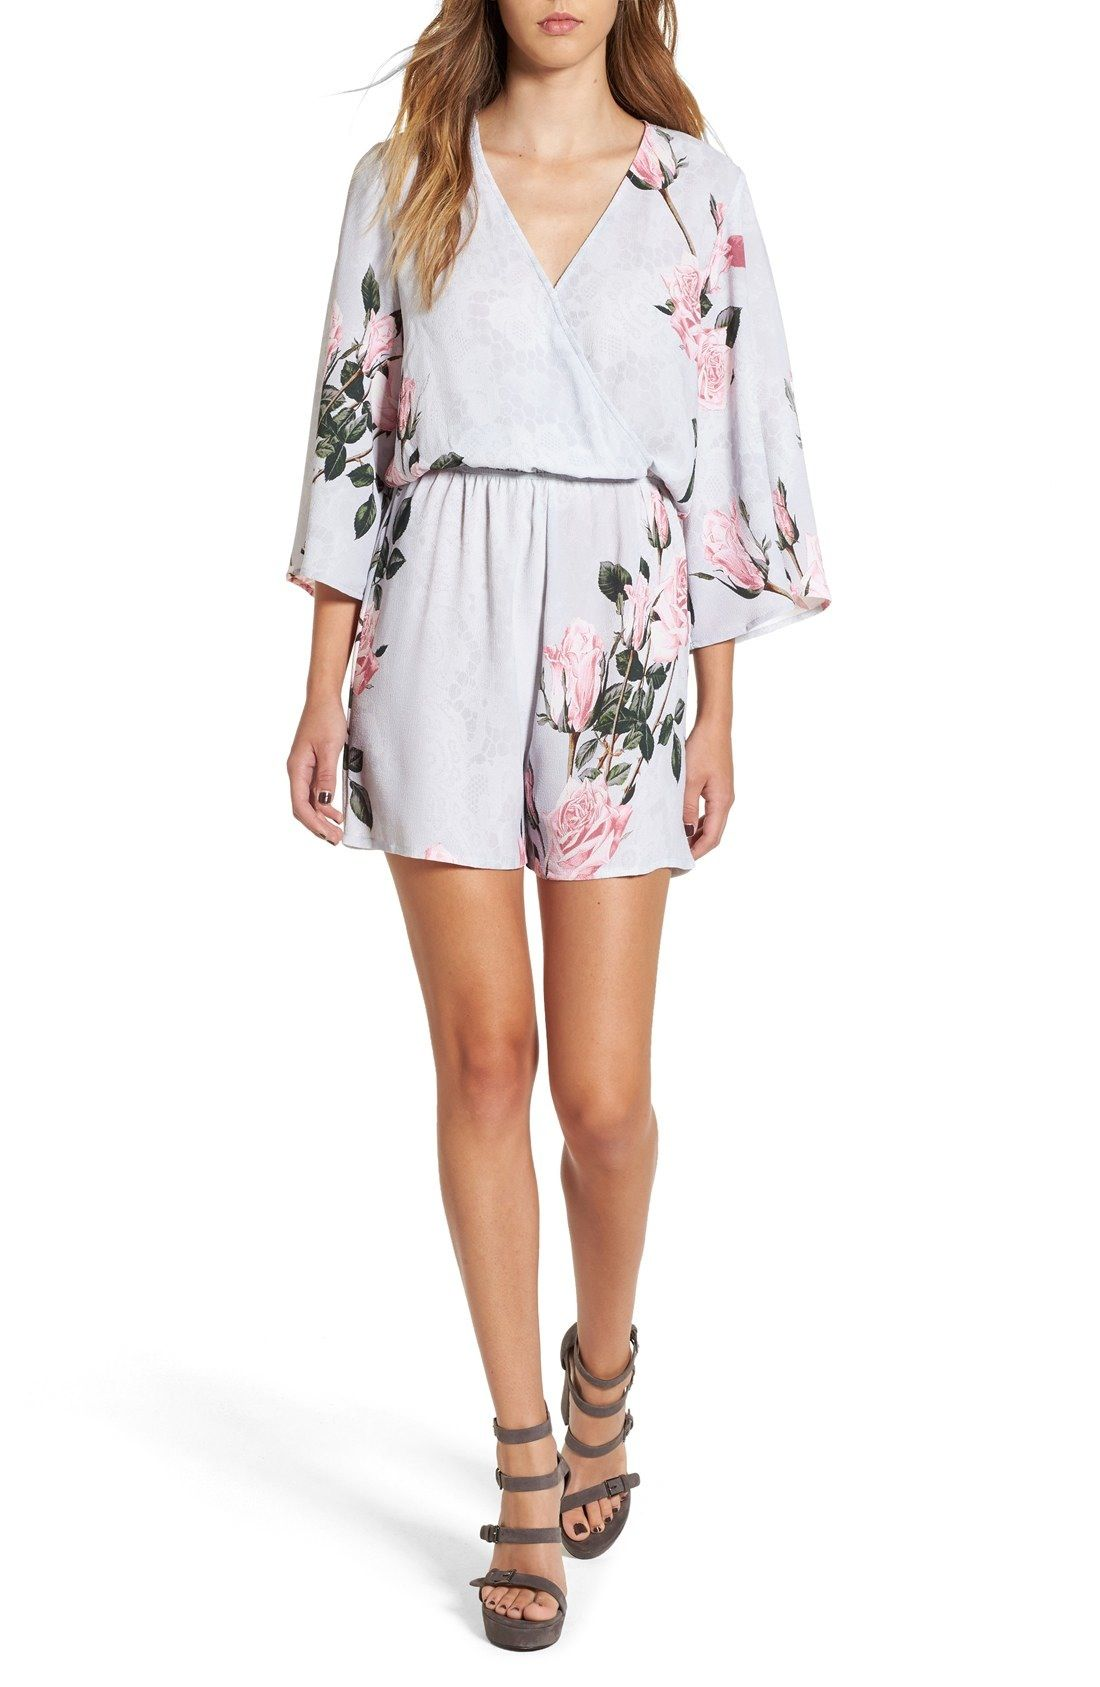 bace30bcca0 Glamorous Floral Print Lace Kimono Romper available at  Nordstrom ...